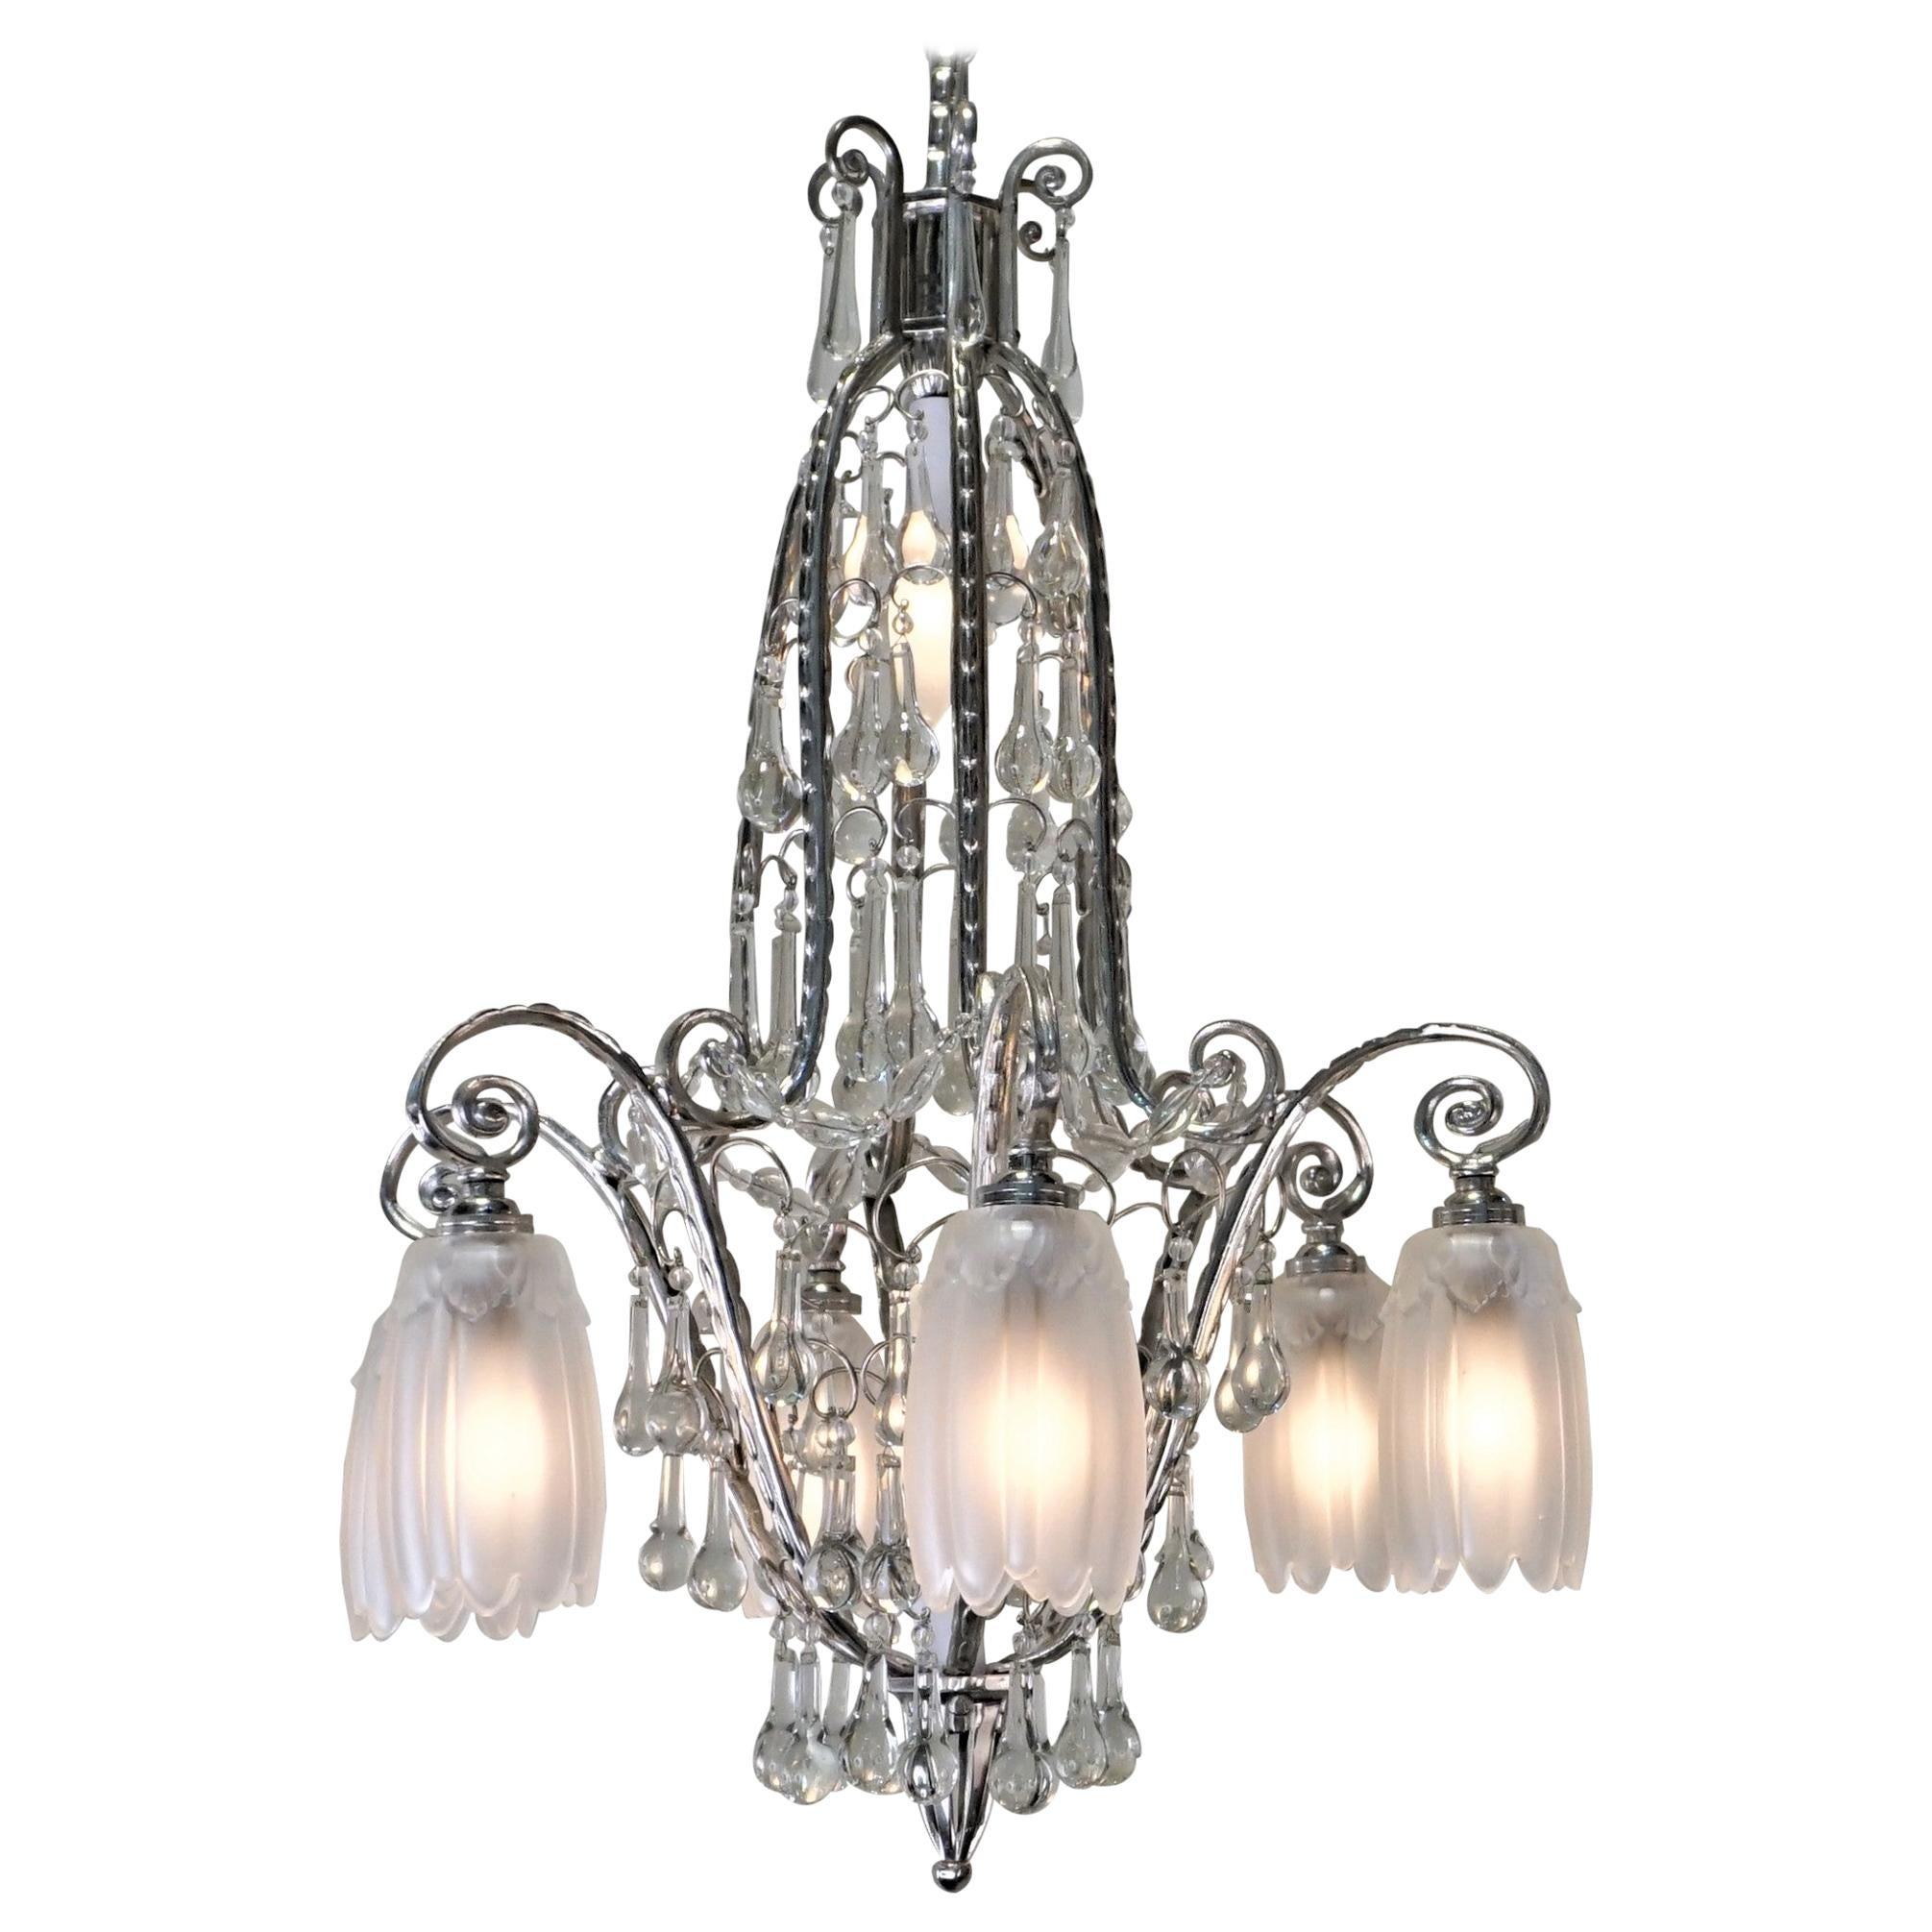 French 1930s Art Deco Crystal and Nickel Chandelier